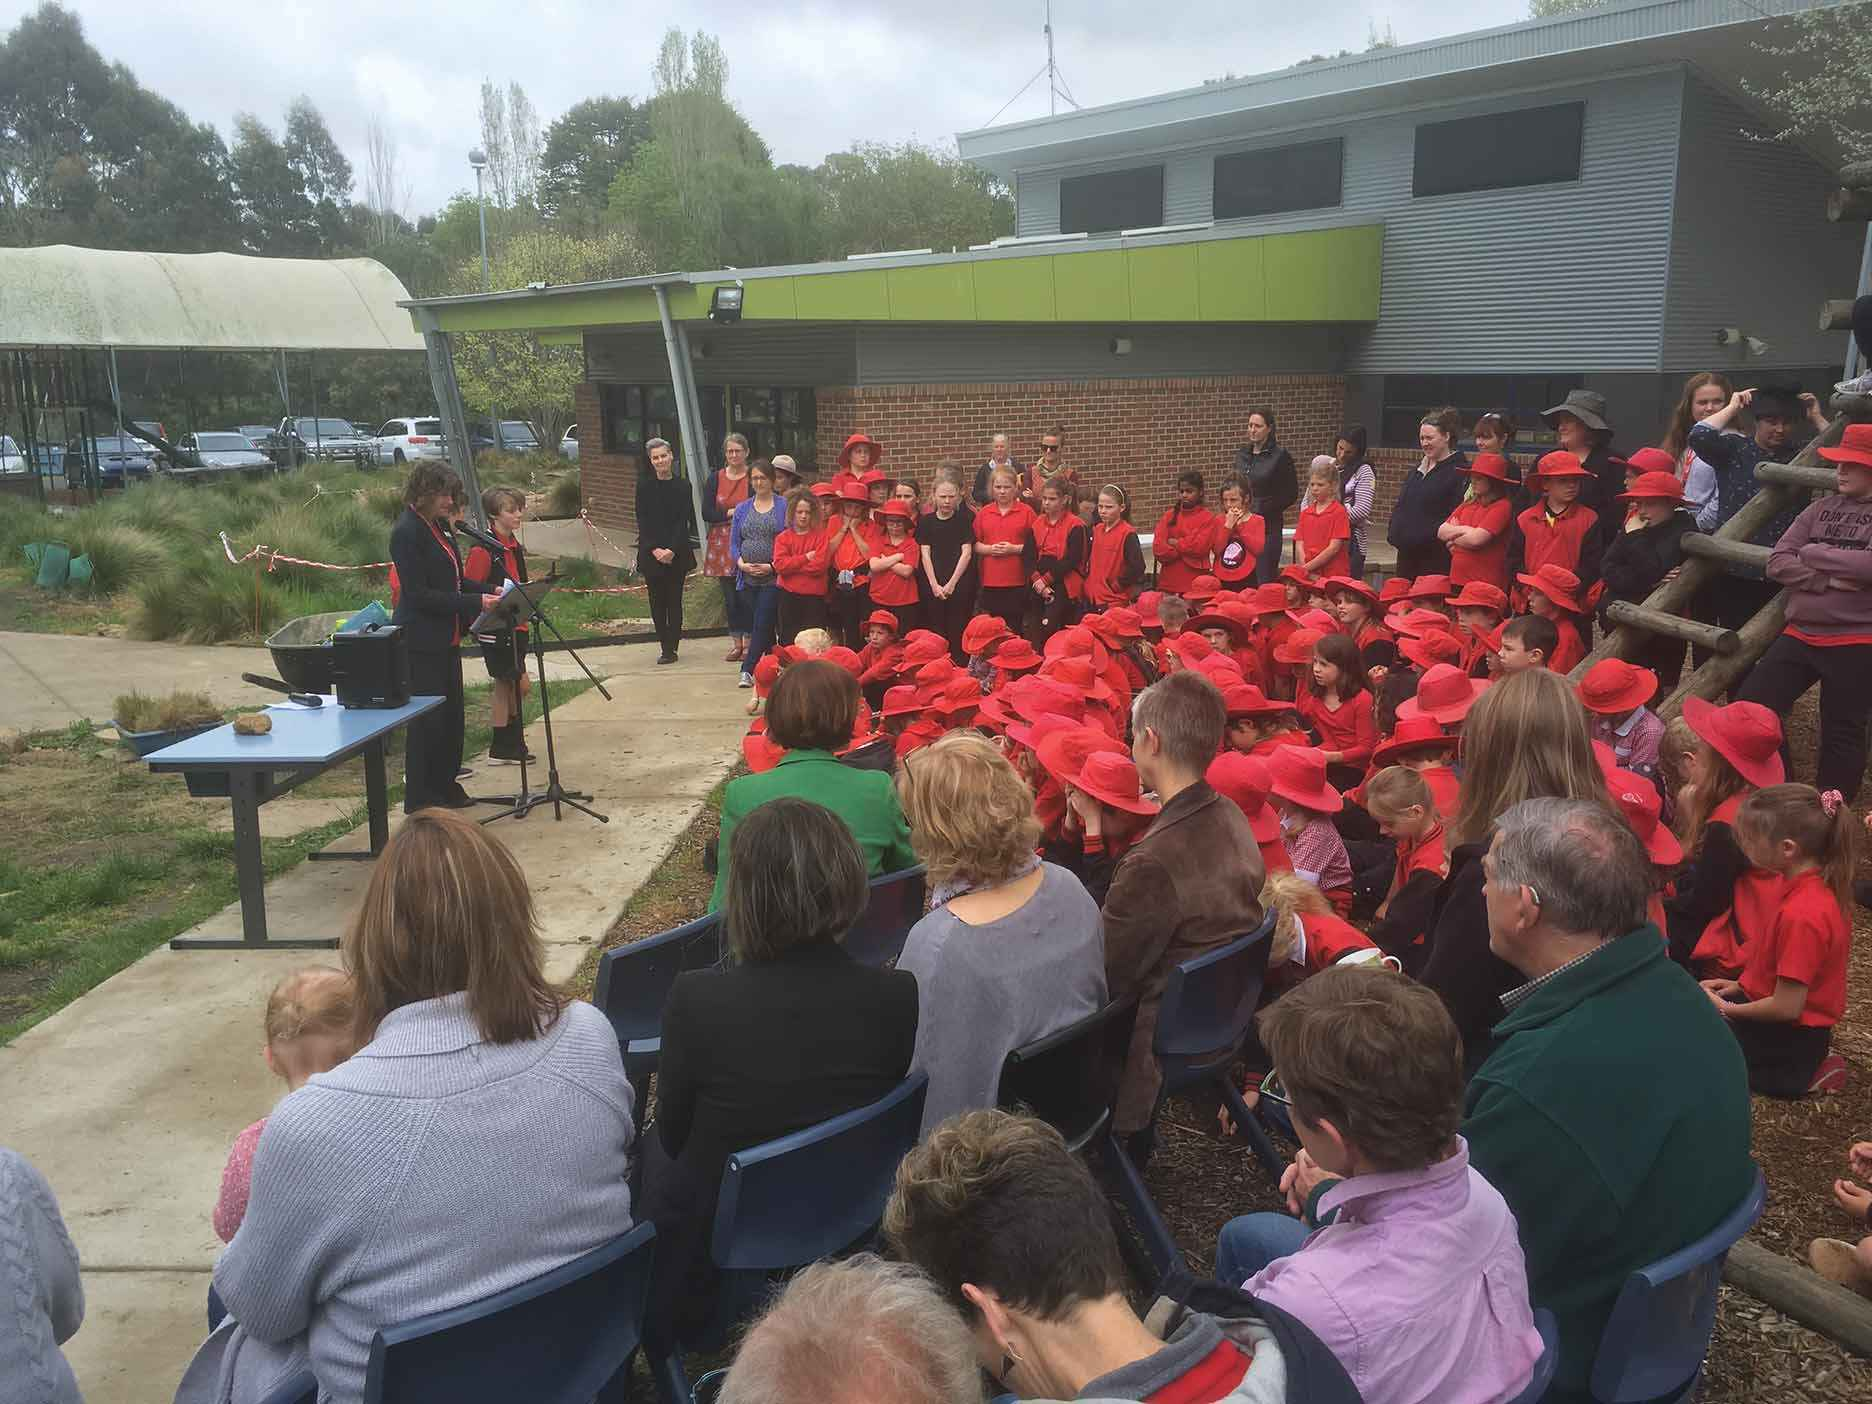 The whole of the Newham Primary School community gathered to hear about the benefits of providing habitat and increasing biodiversity on frog bog day.